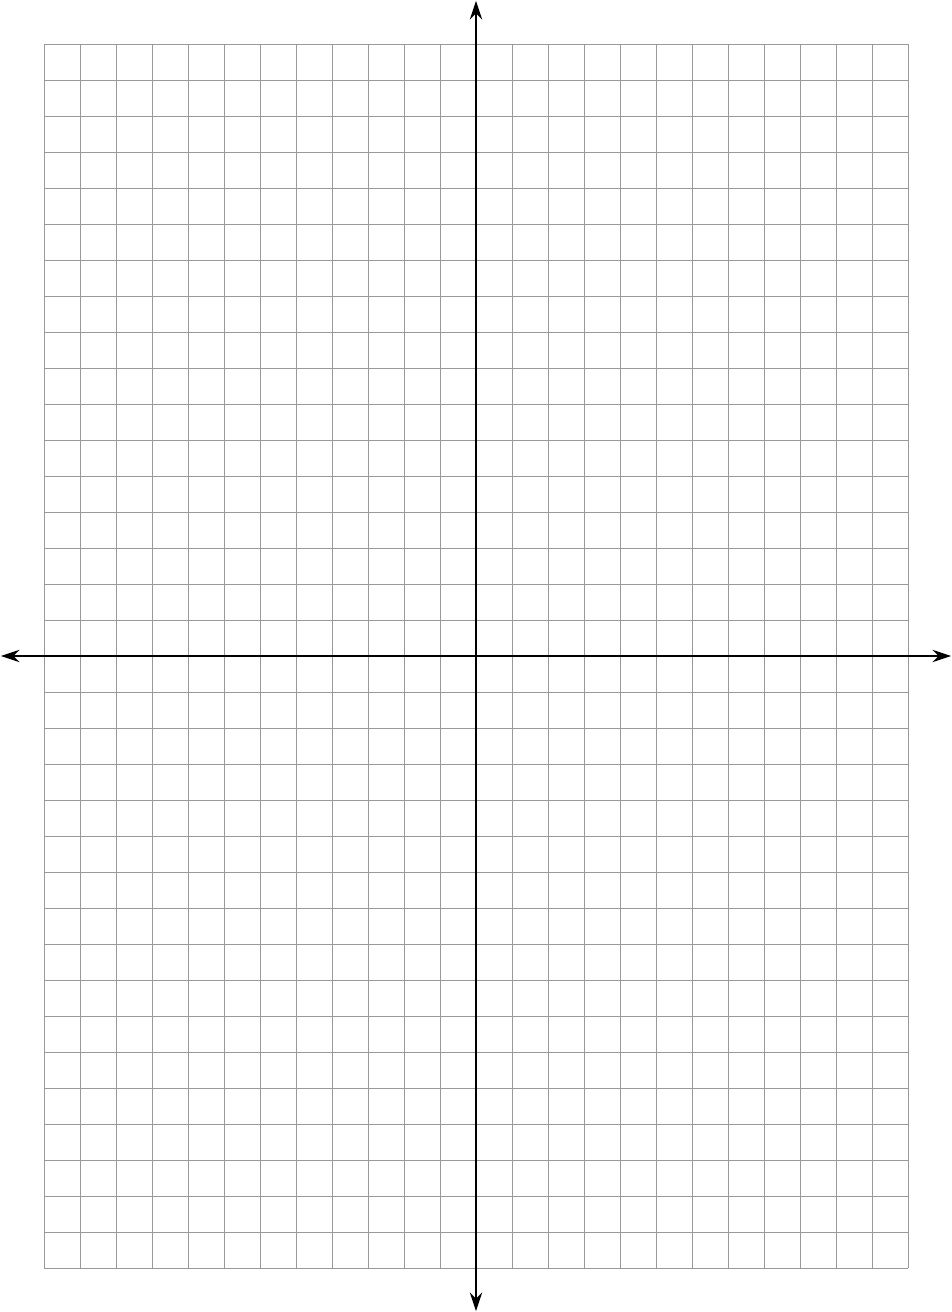 worksheet Coordinate Graph Paper Pdf download coordinate plane graph paper for free tidyform paper